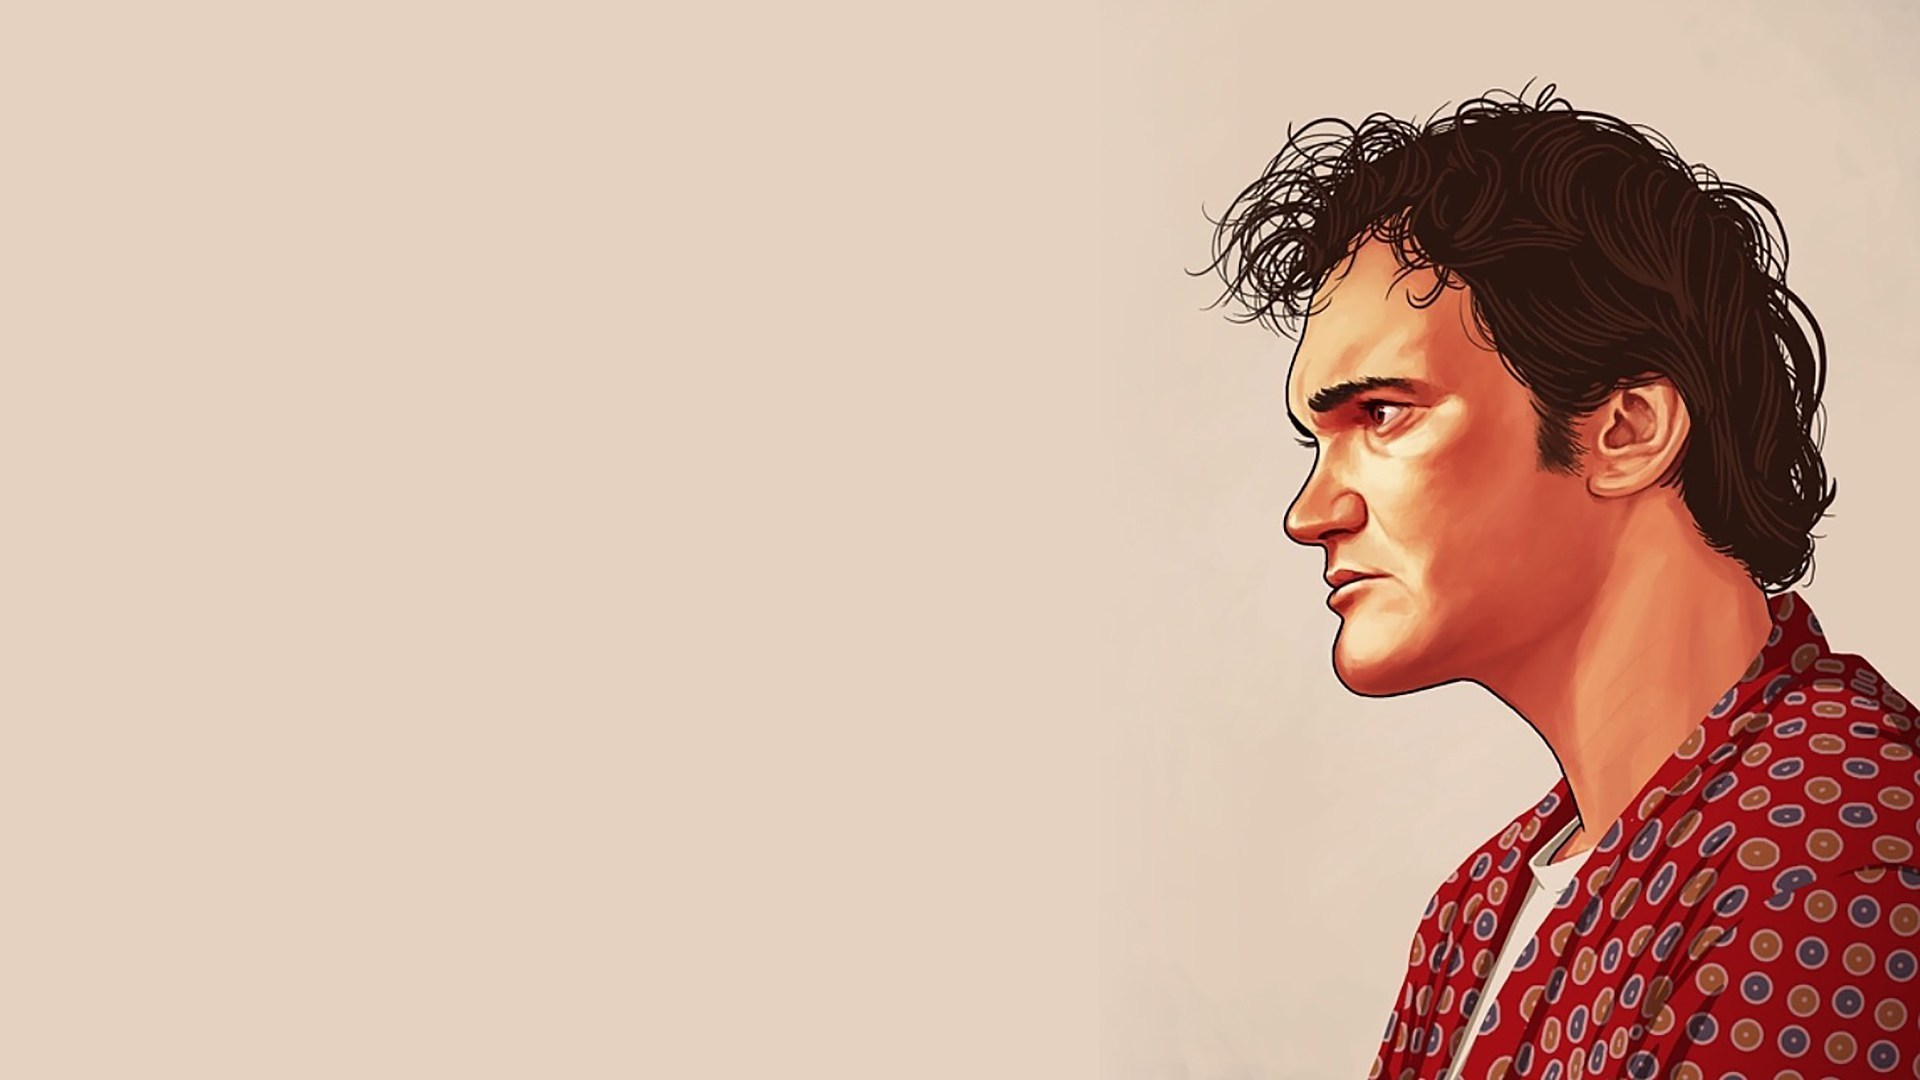 Fan -art de Tarantino